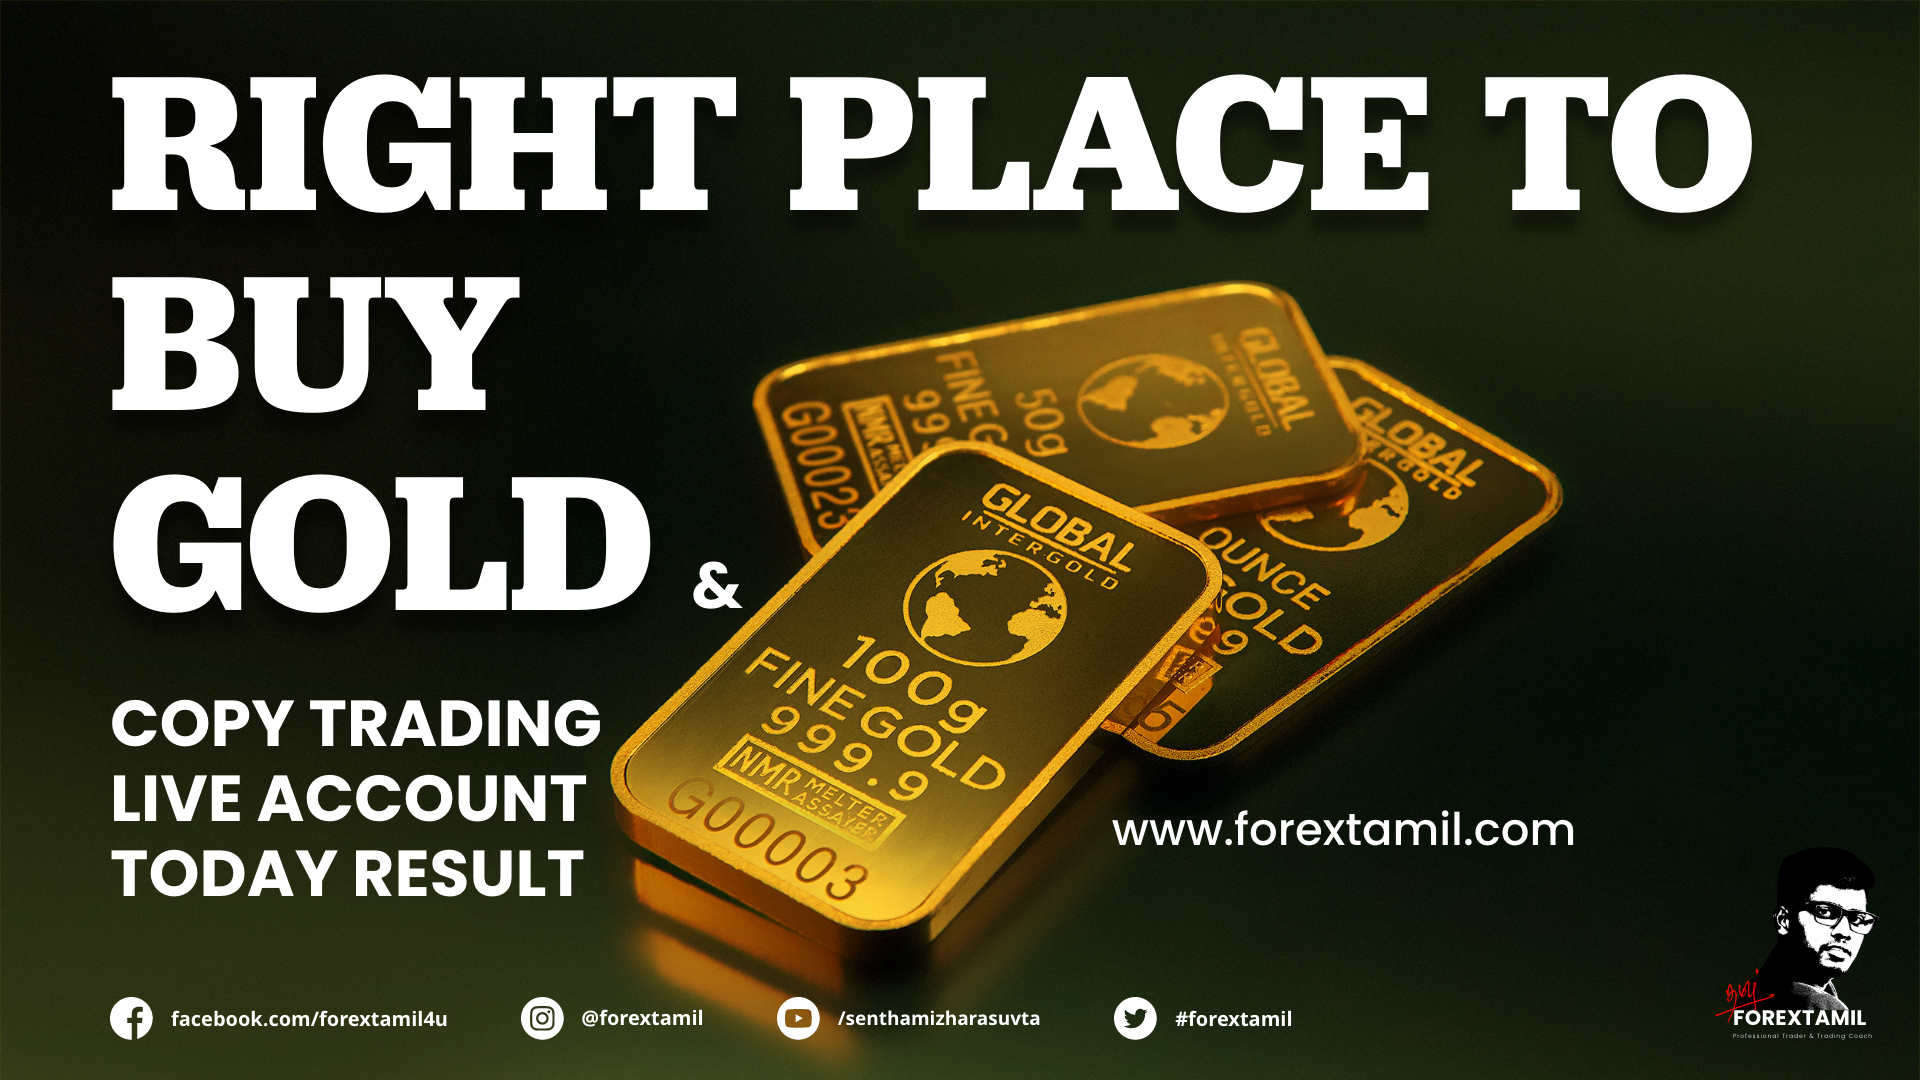 Right Place To Buy GOLD And Copy Trading Live Account Today Result